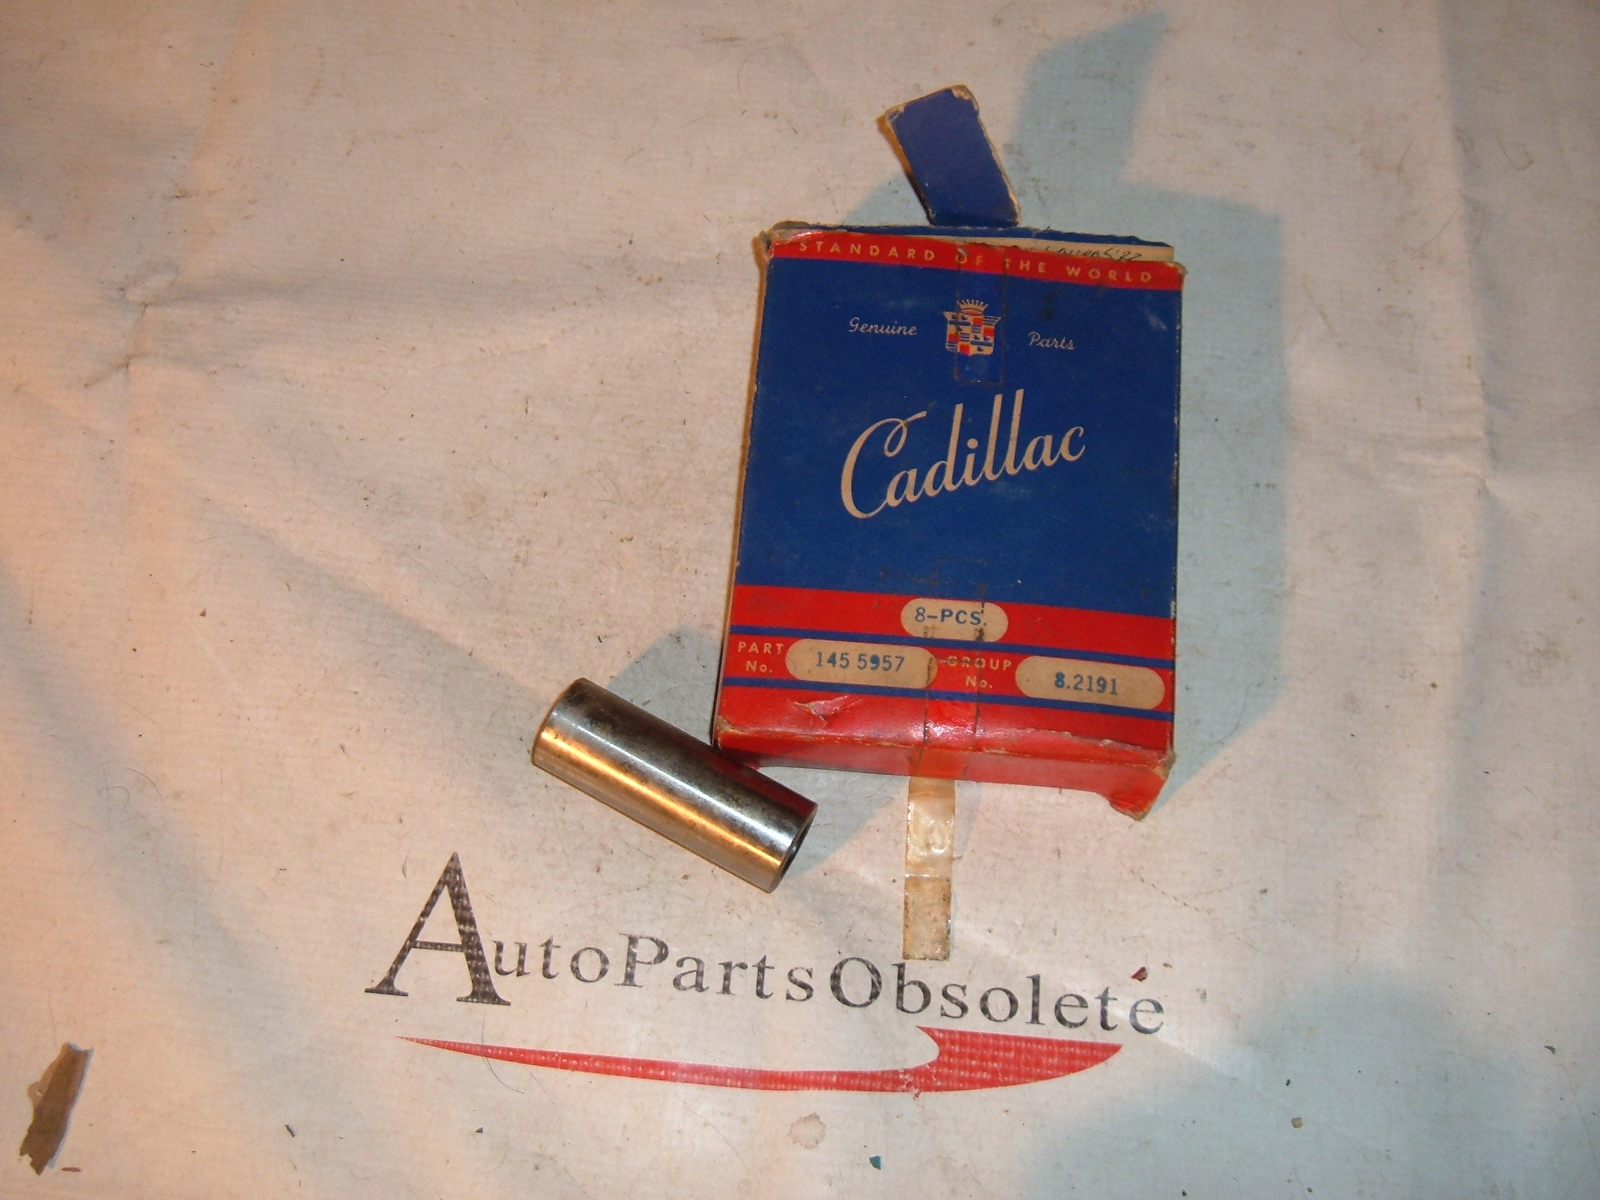 1949 cadillac postion pins .001 oversiize nos # 1455957 (z 1455957)